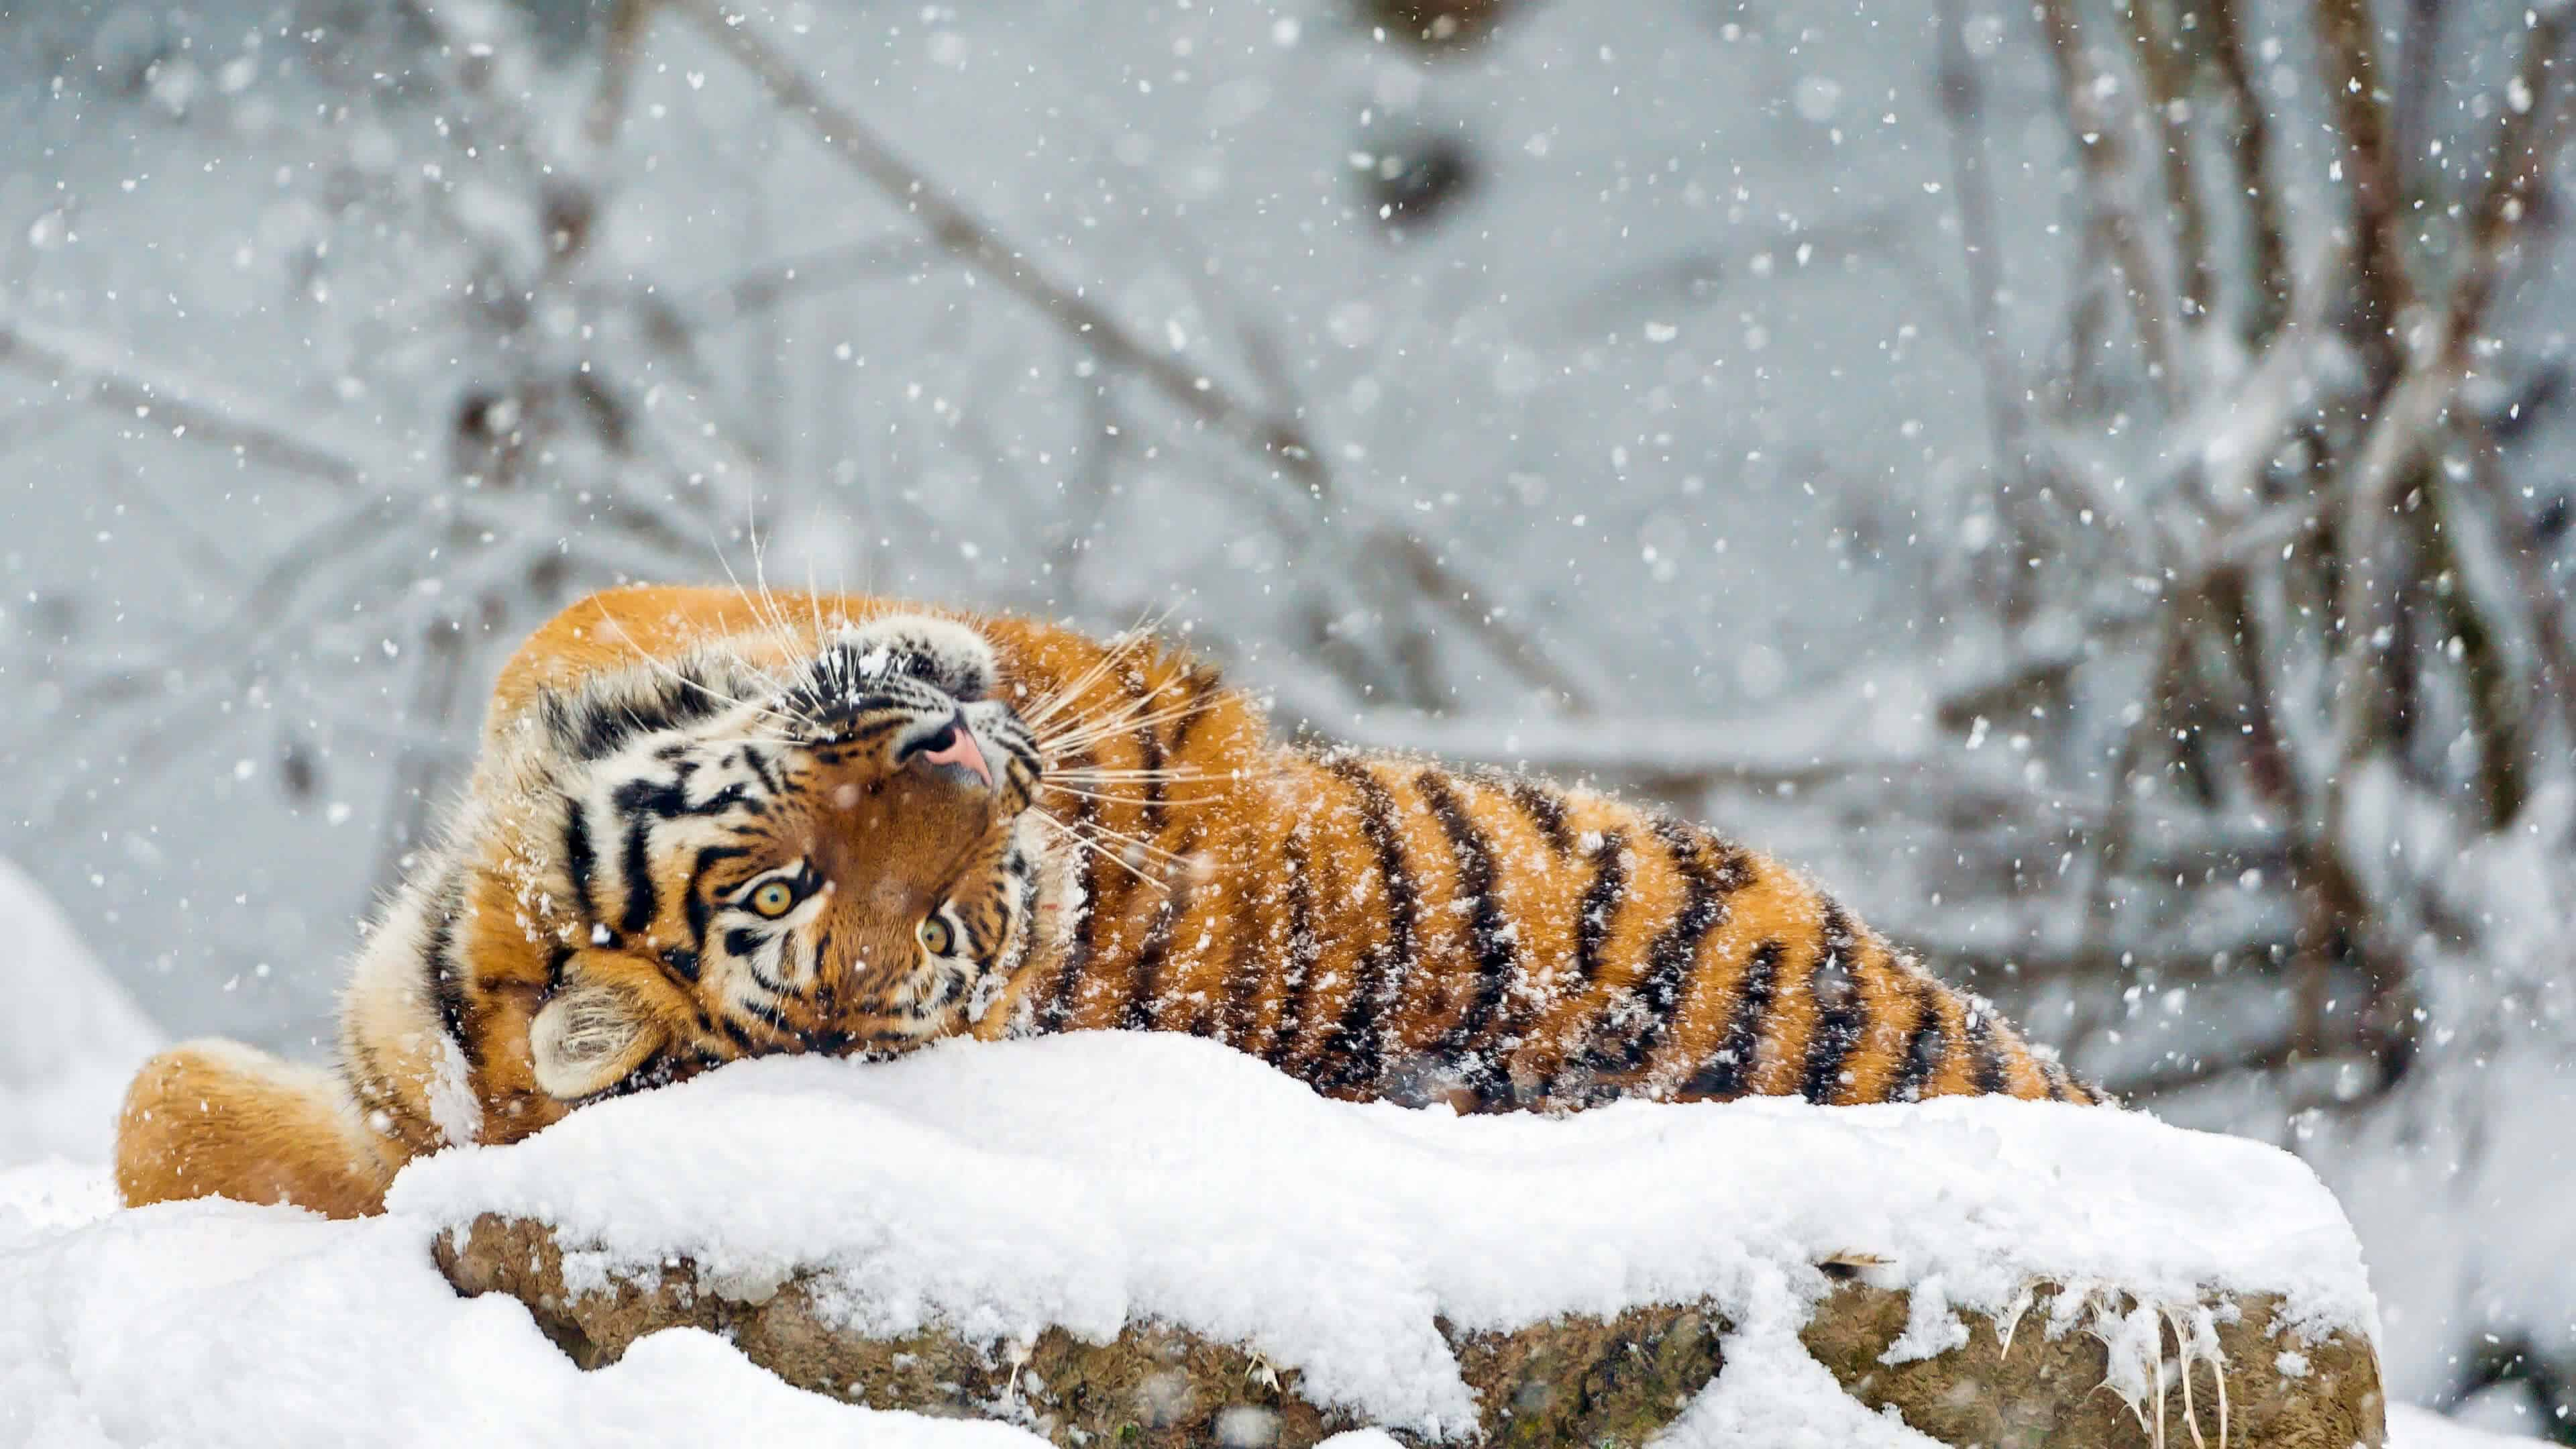 Ultra Hd Wallpapers Cars Tiger Rolling In The Snow Uhd 4k Wallpaper Pixelz